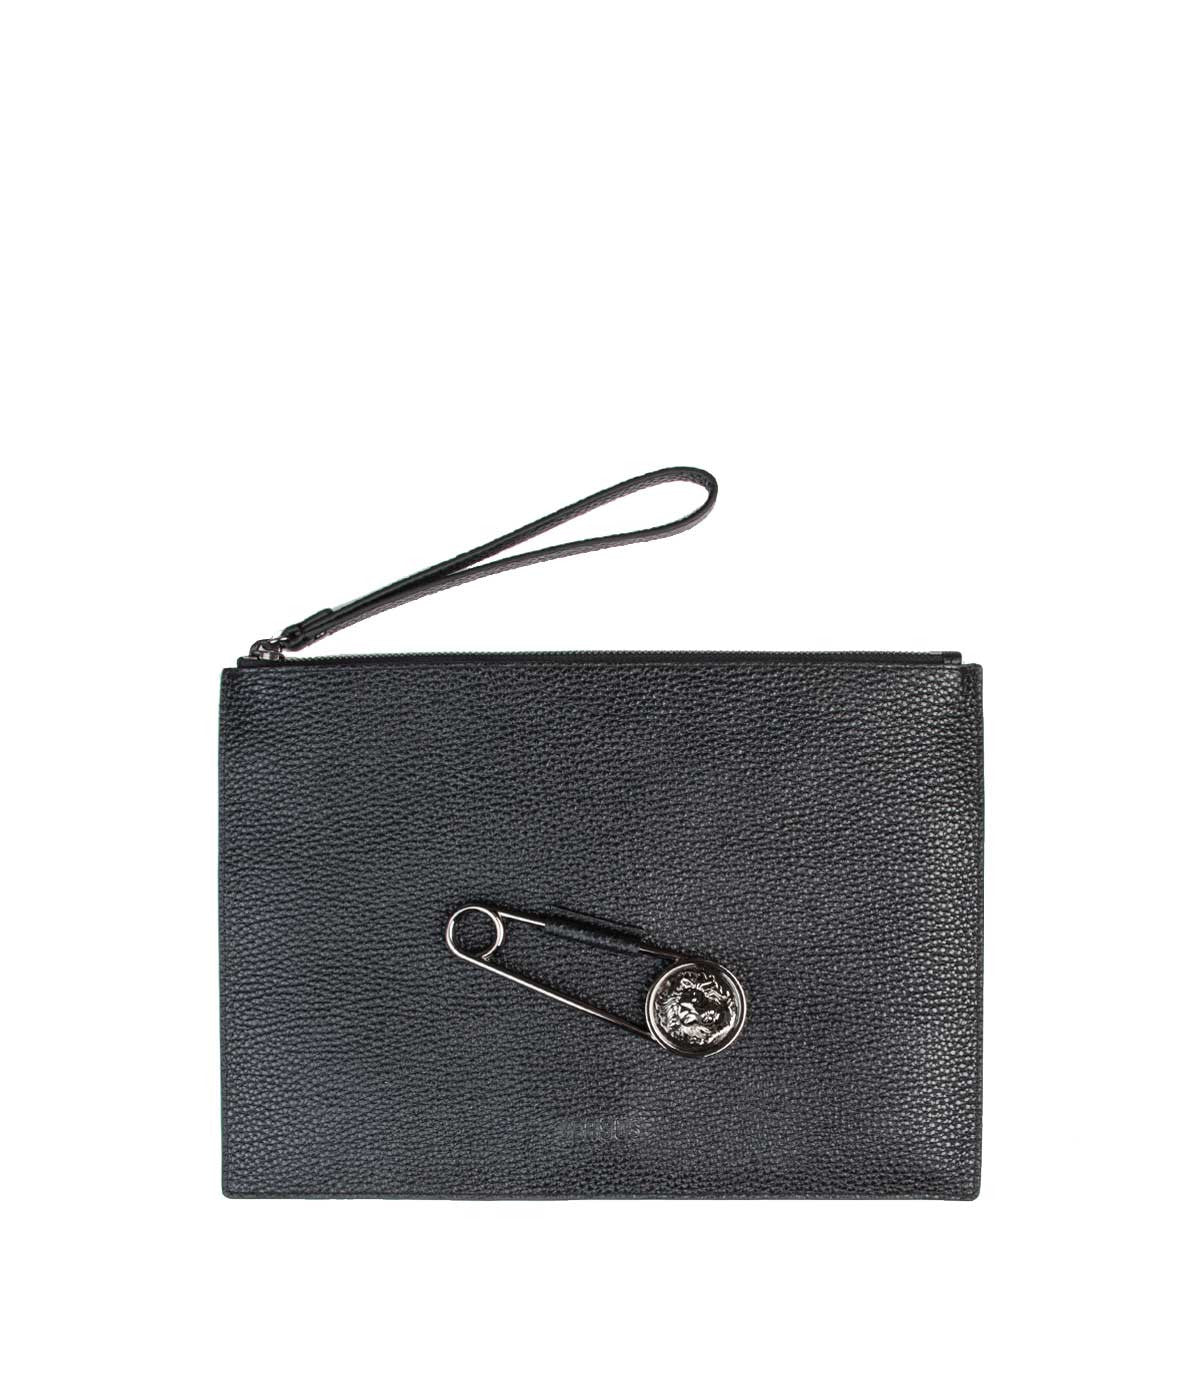 Black Safety Pin Clutch